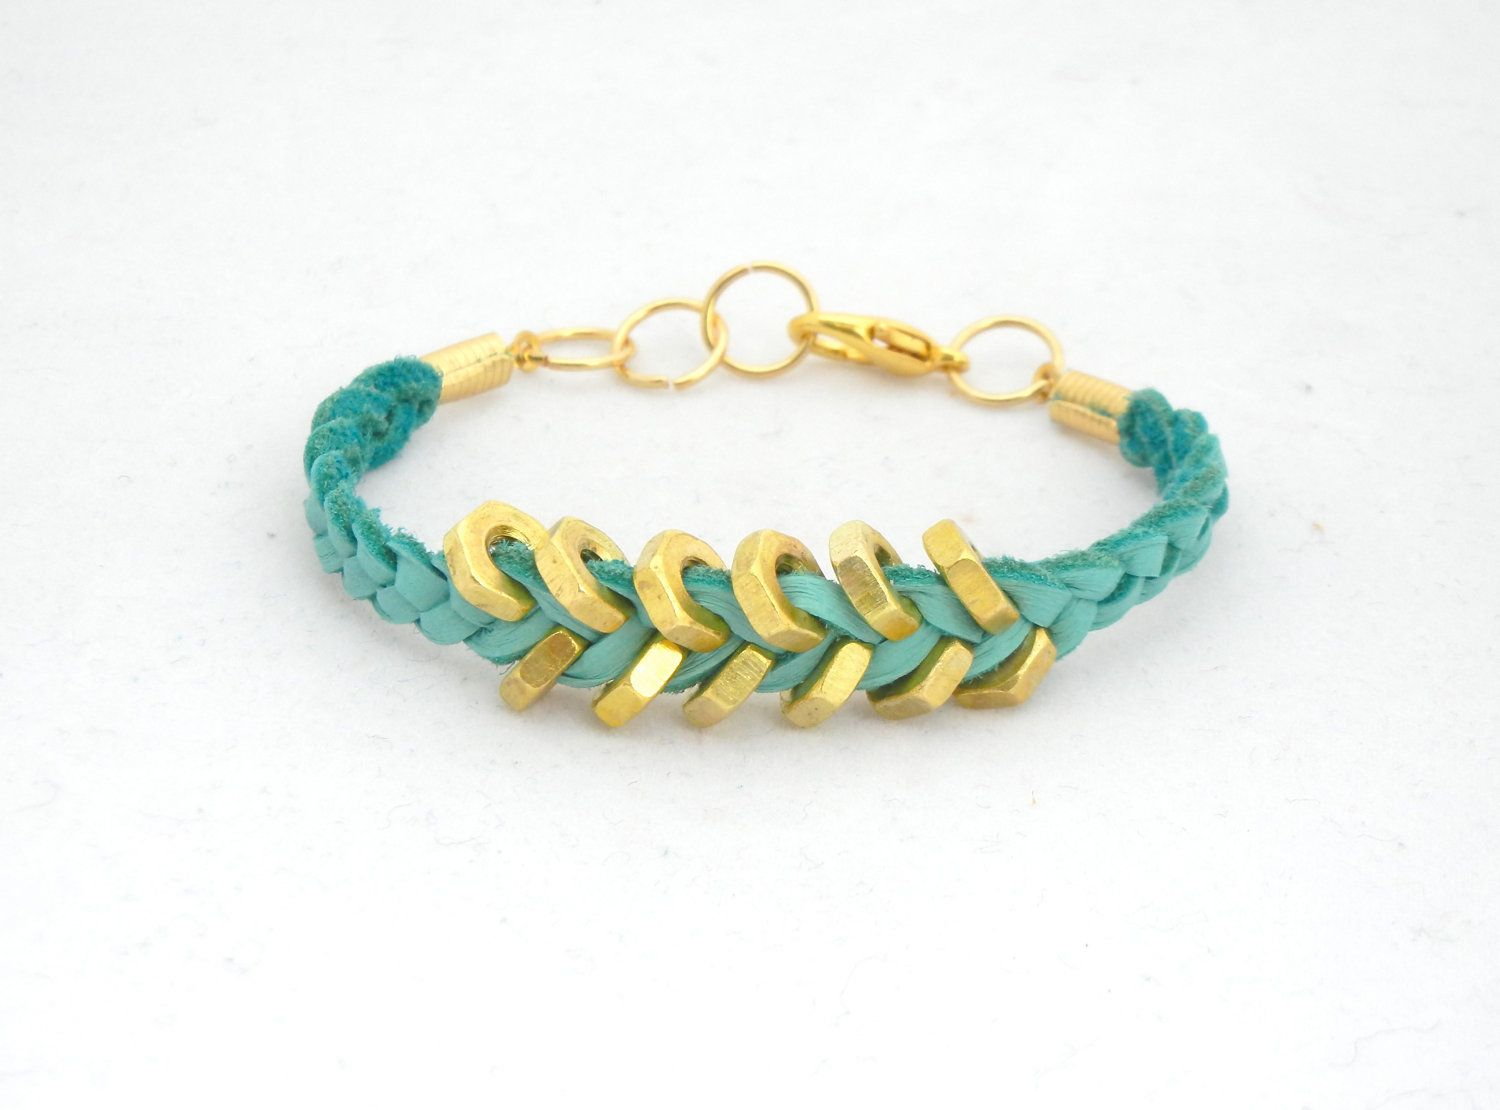 Teal Suede Leather Bracelet with Gold Hex Nut by thepinkruffle, $12.00